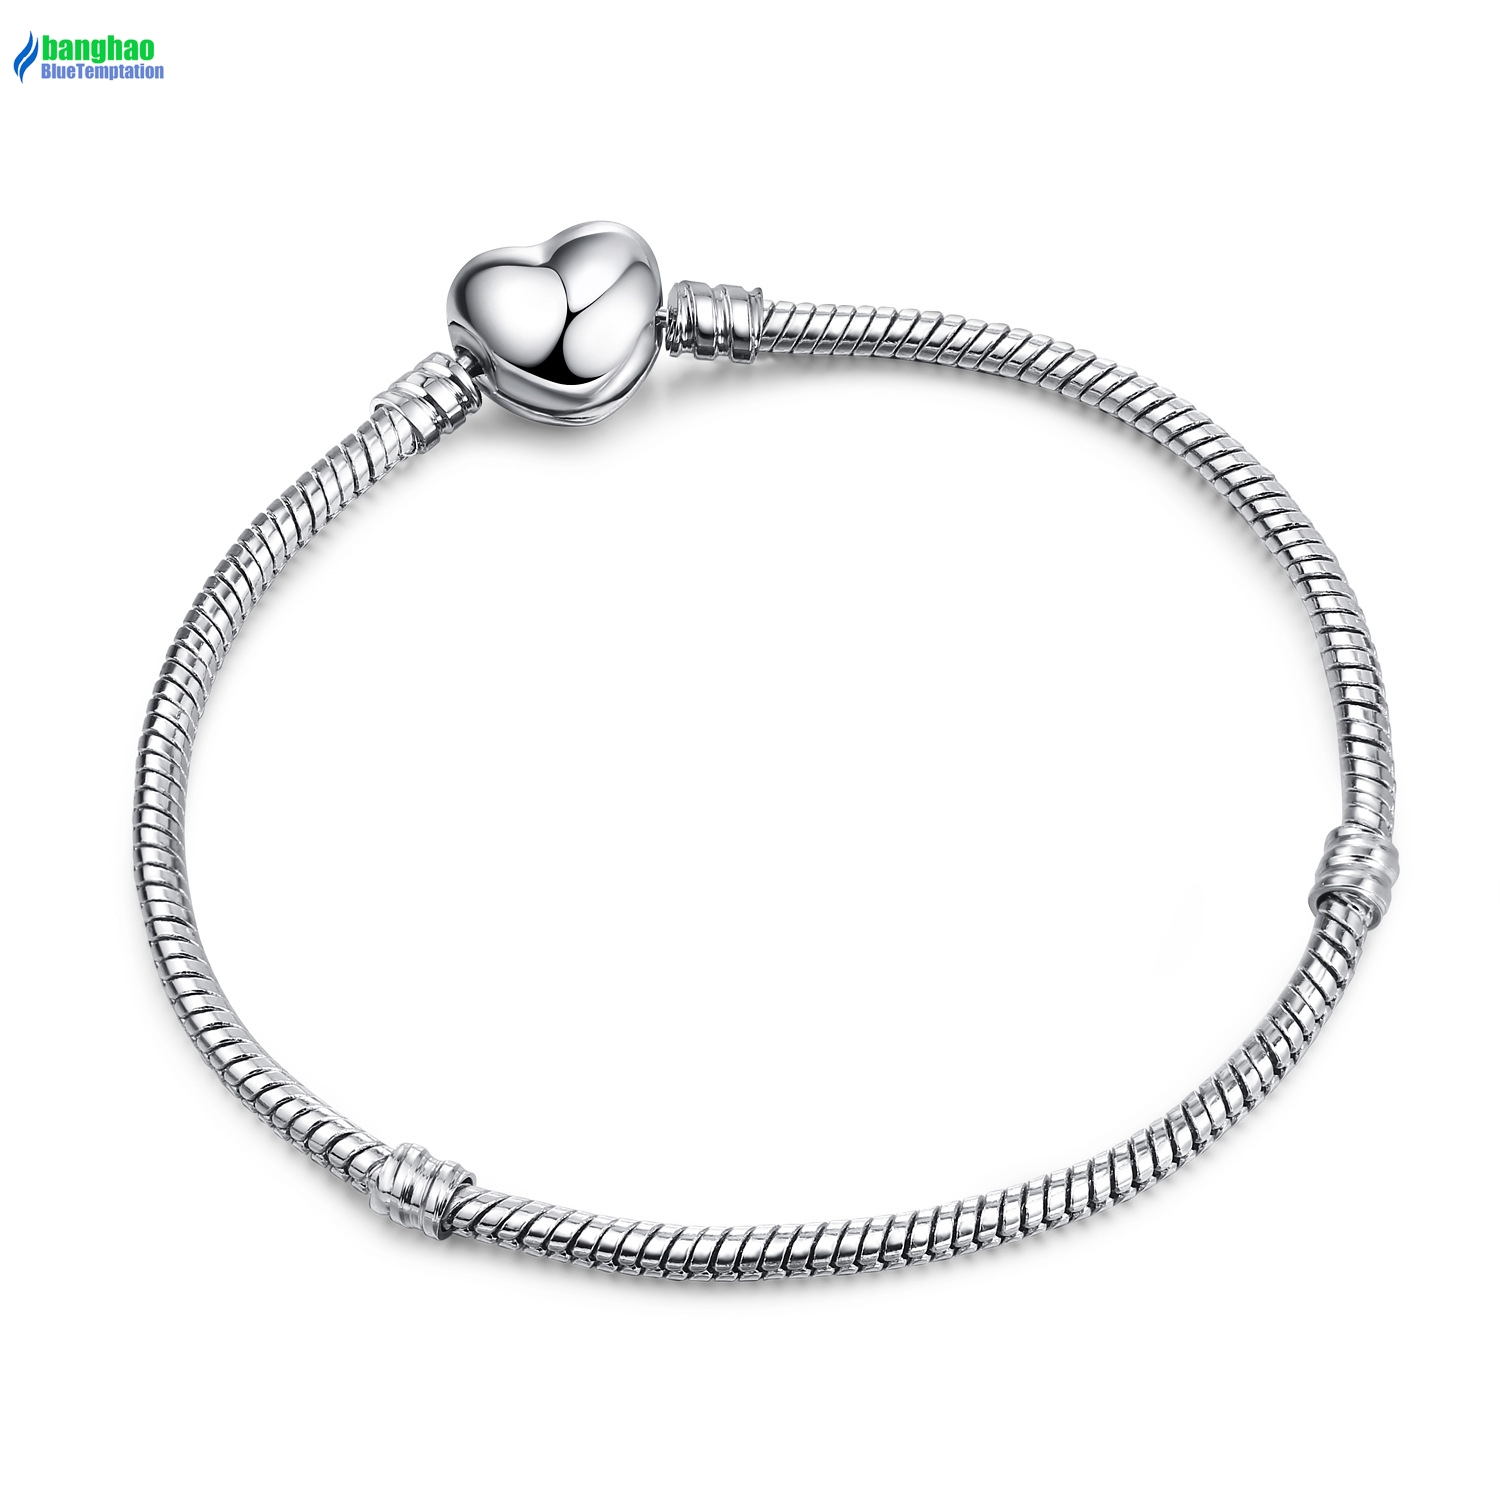 Fashion 925 Charm Bracelet Silver Snake Chain Clip Clasp Bead Fit